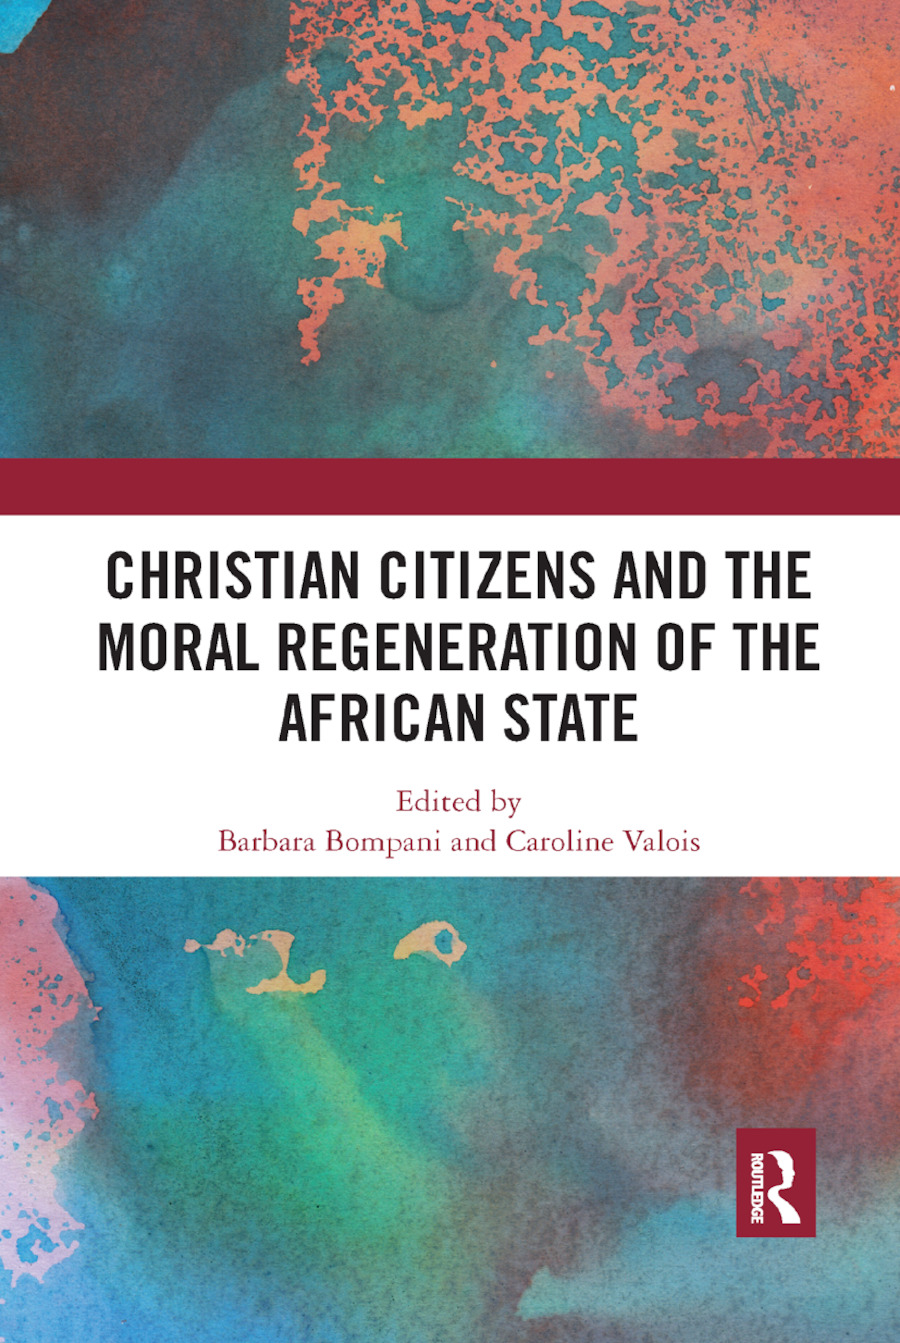 Christian Citizens and the Moral Regeneration of the African State